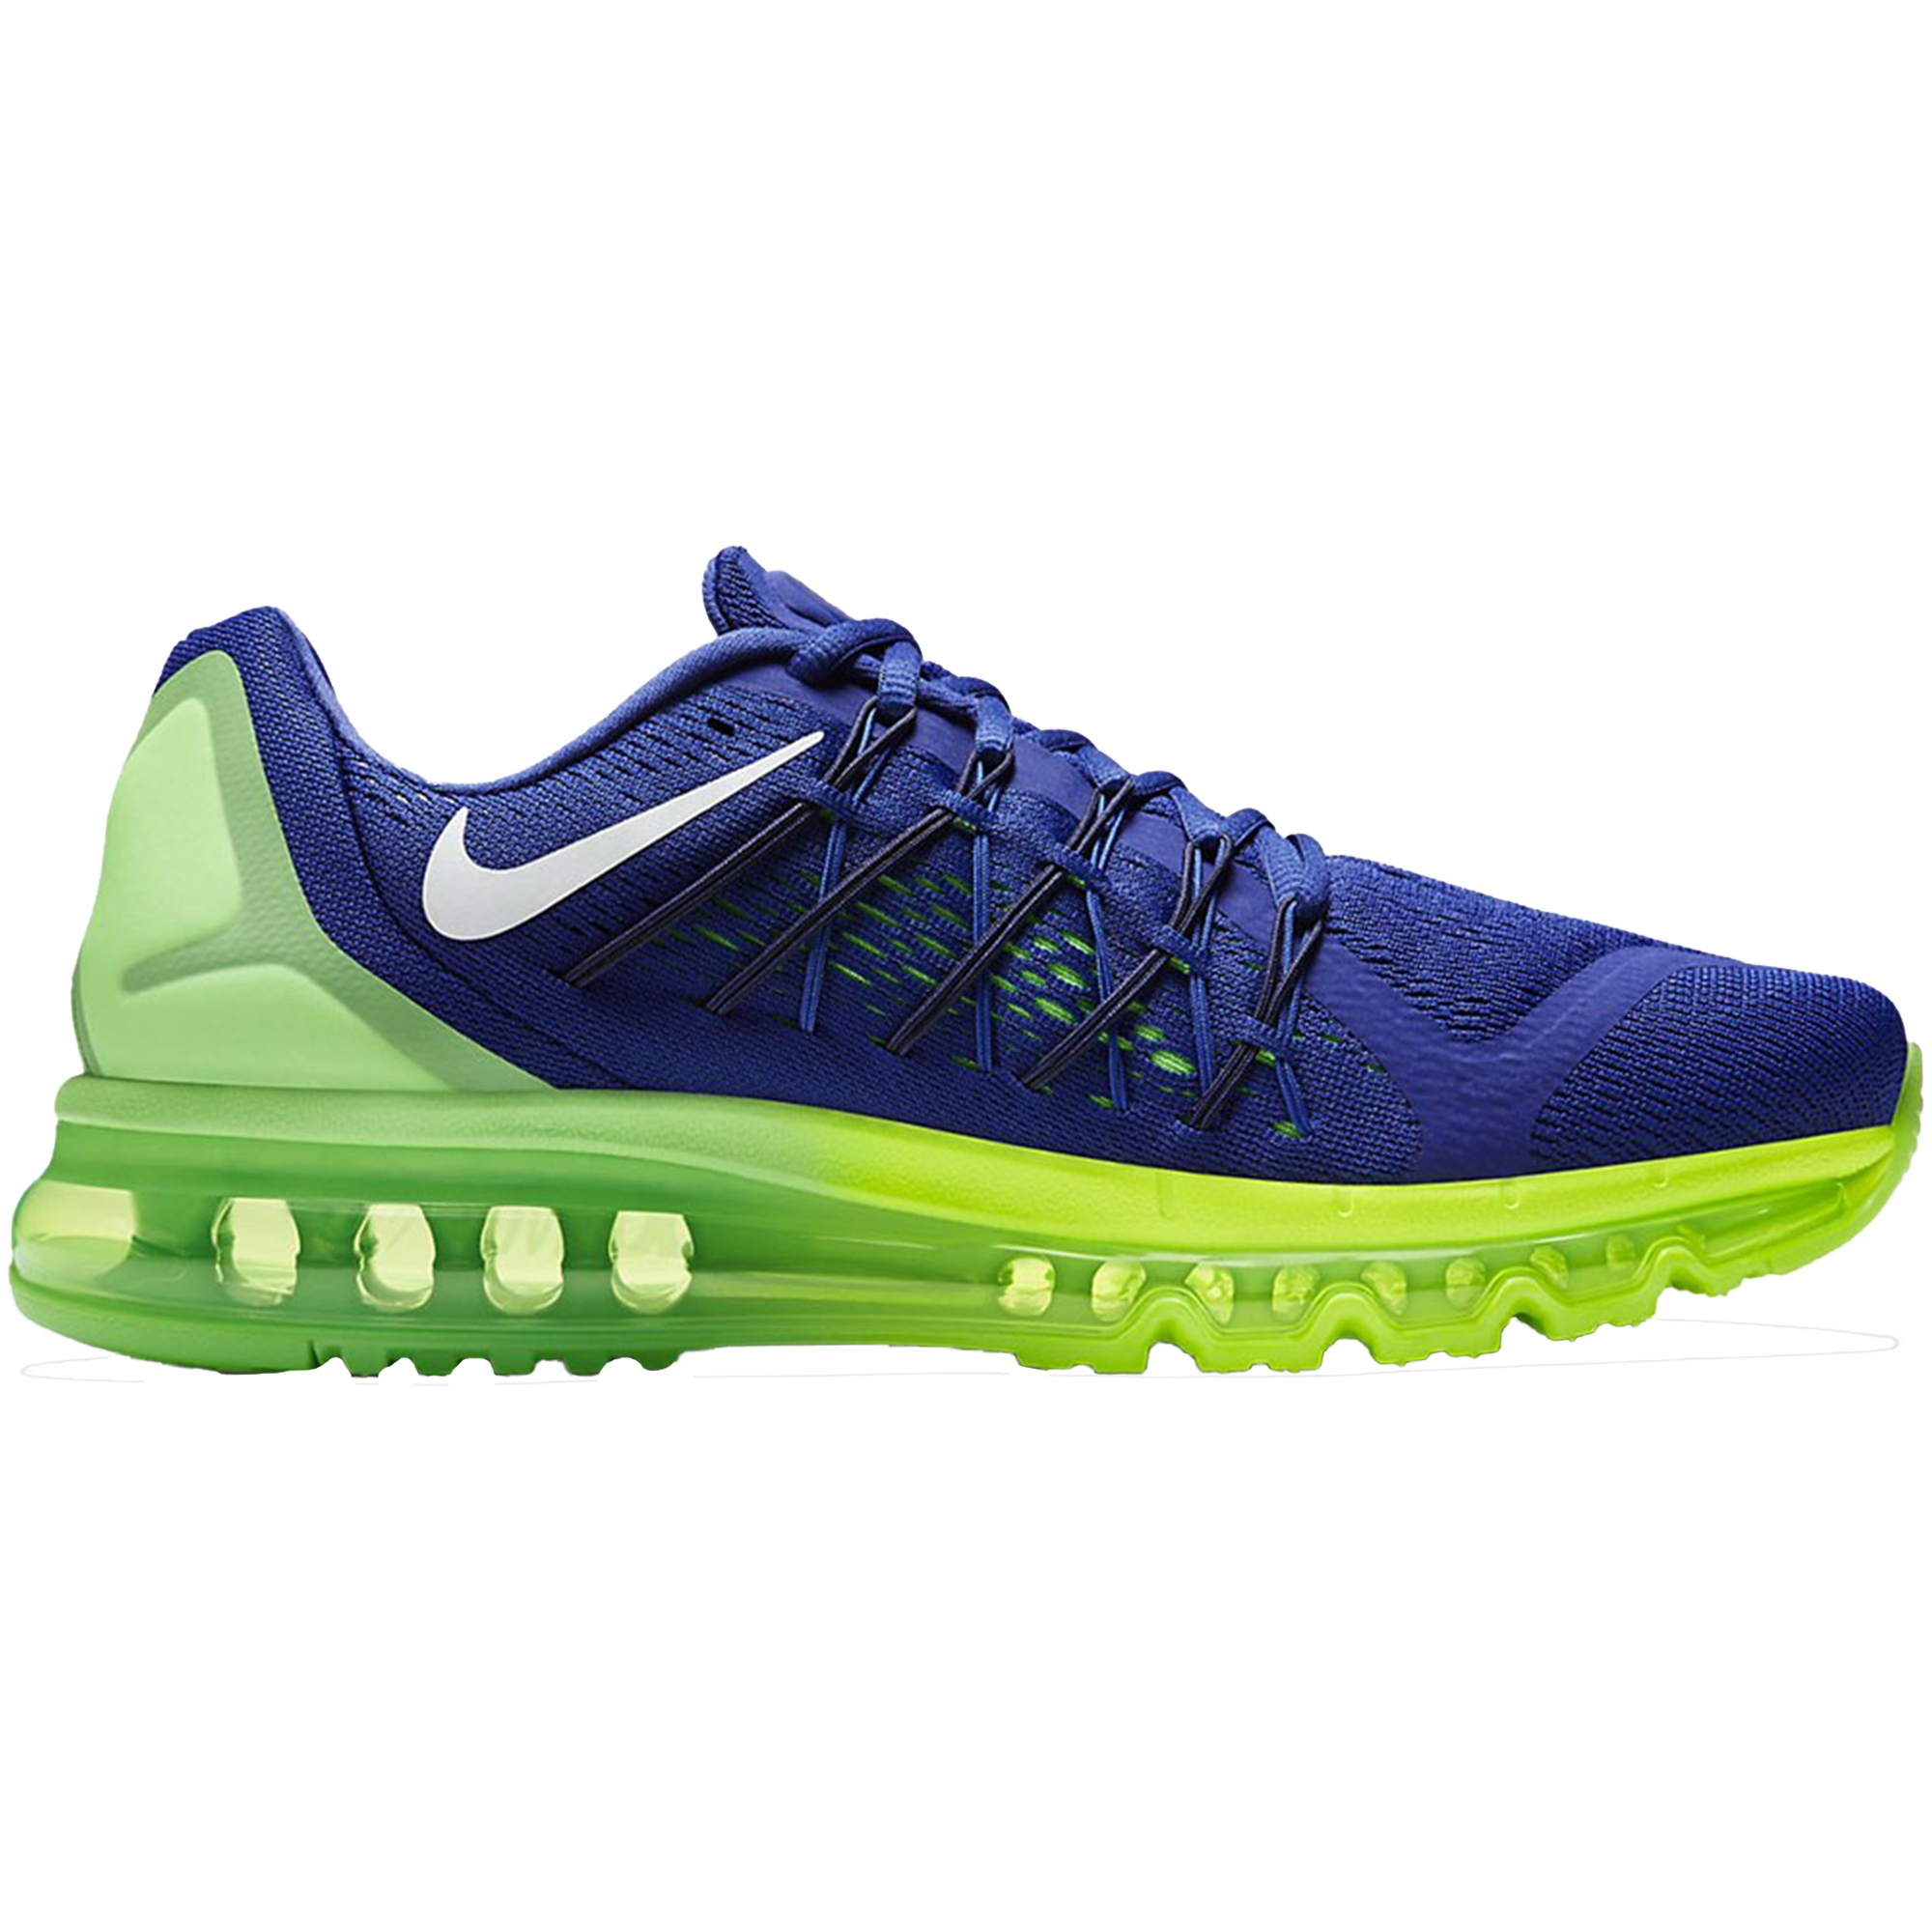 nike air max 2015 erkek spor ayakkab 698902 407. Black Bedroom Furniture Sets. Home Design Ideas